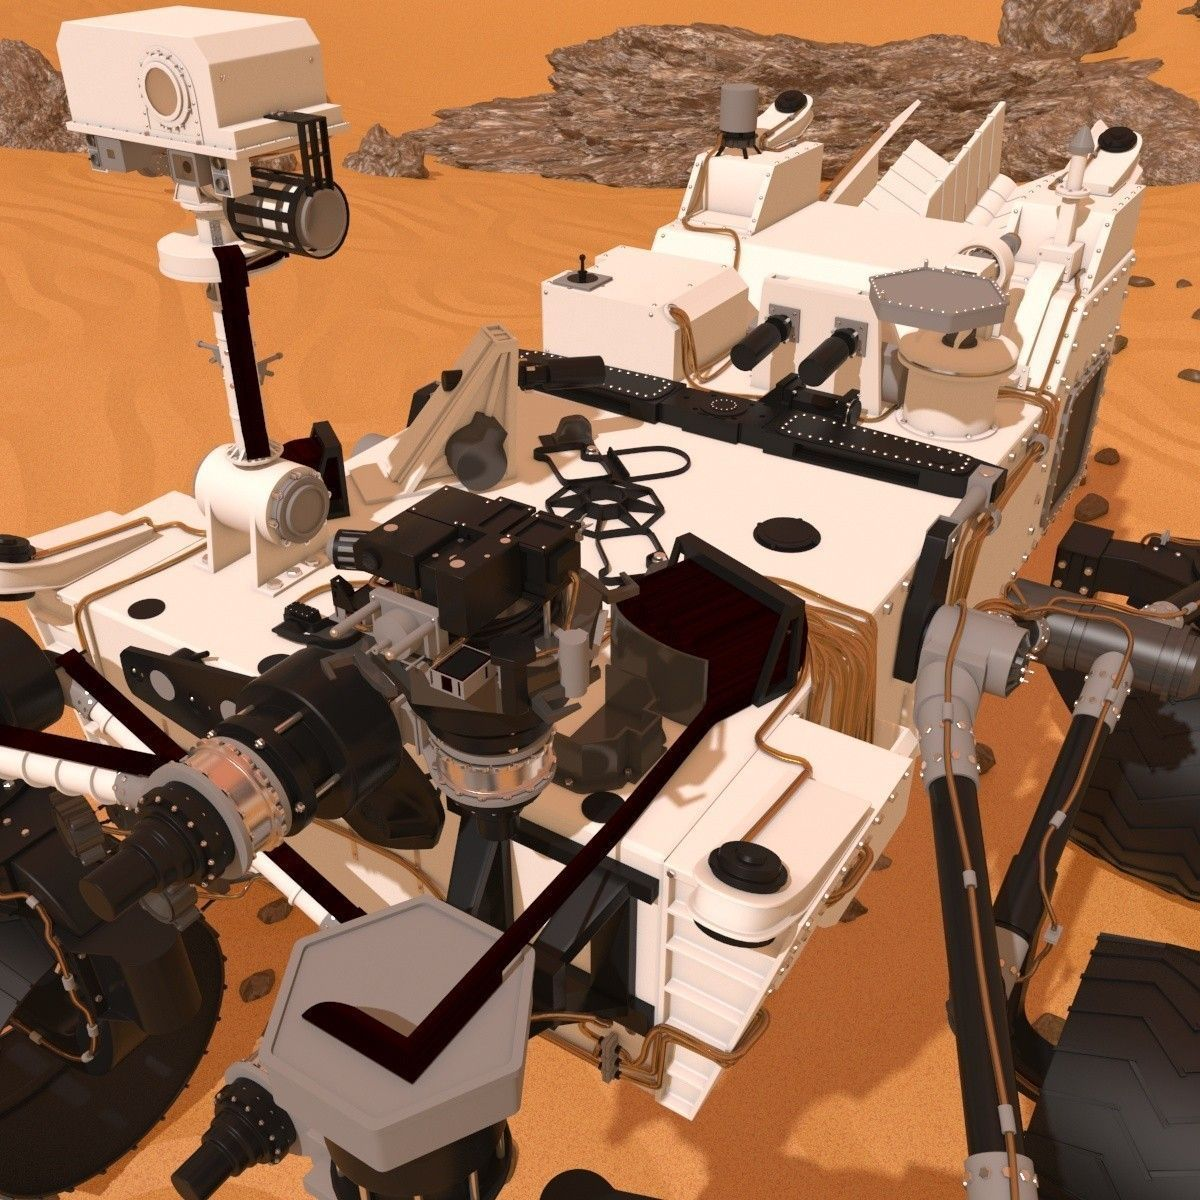 curiosity rover scale model - photo #13